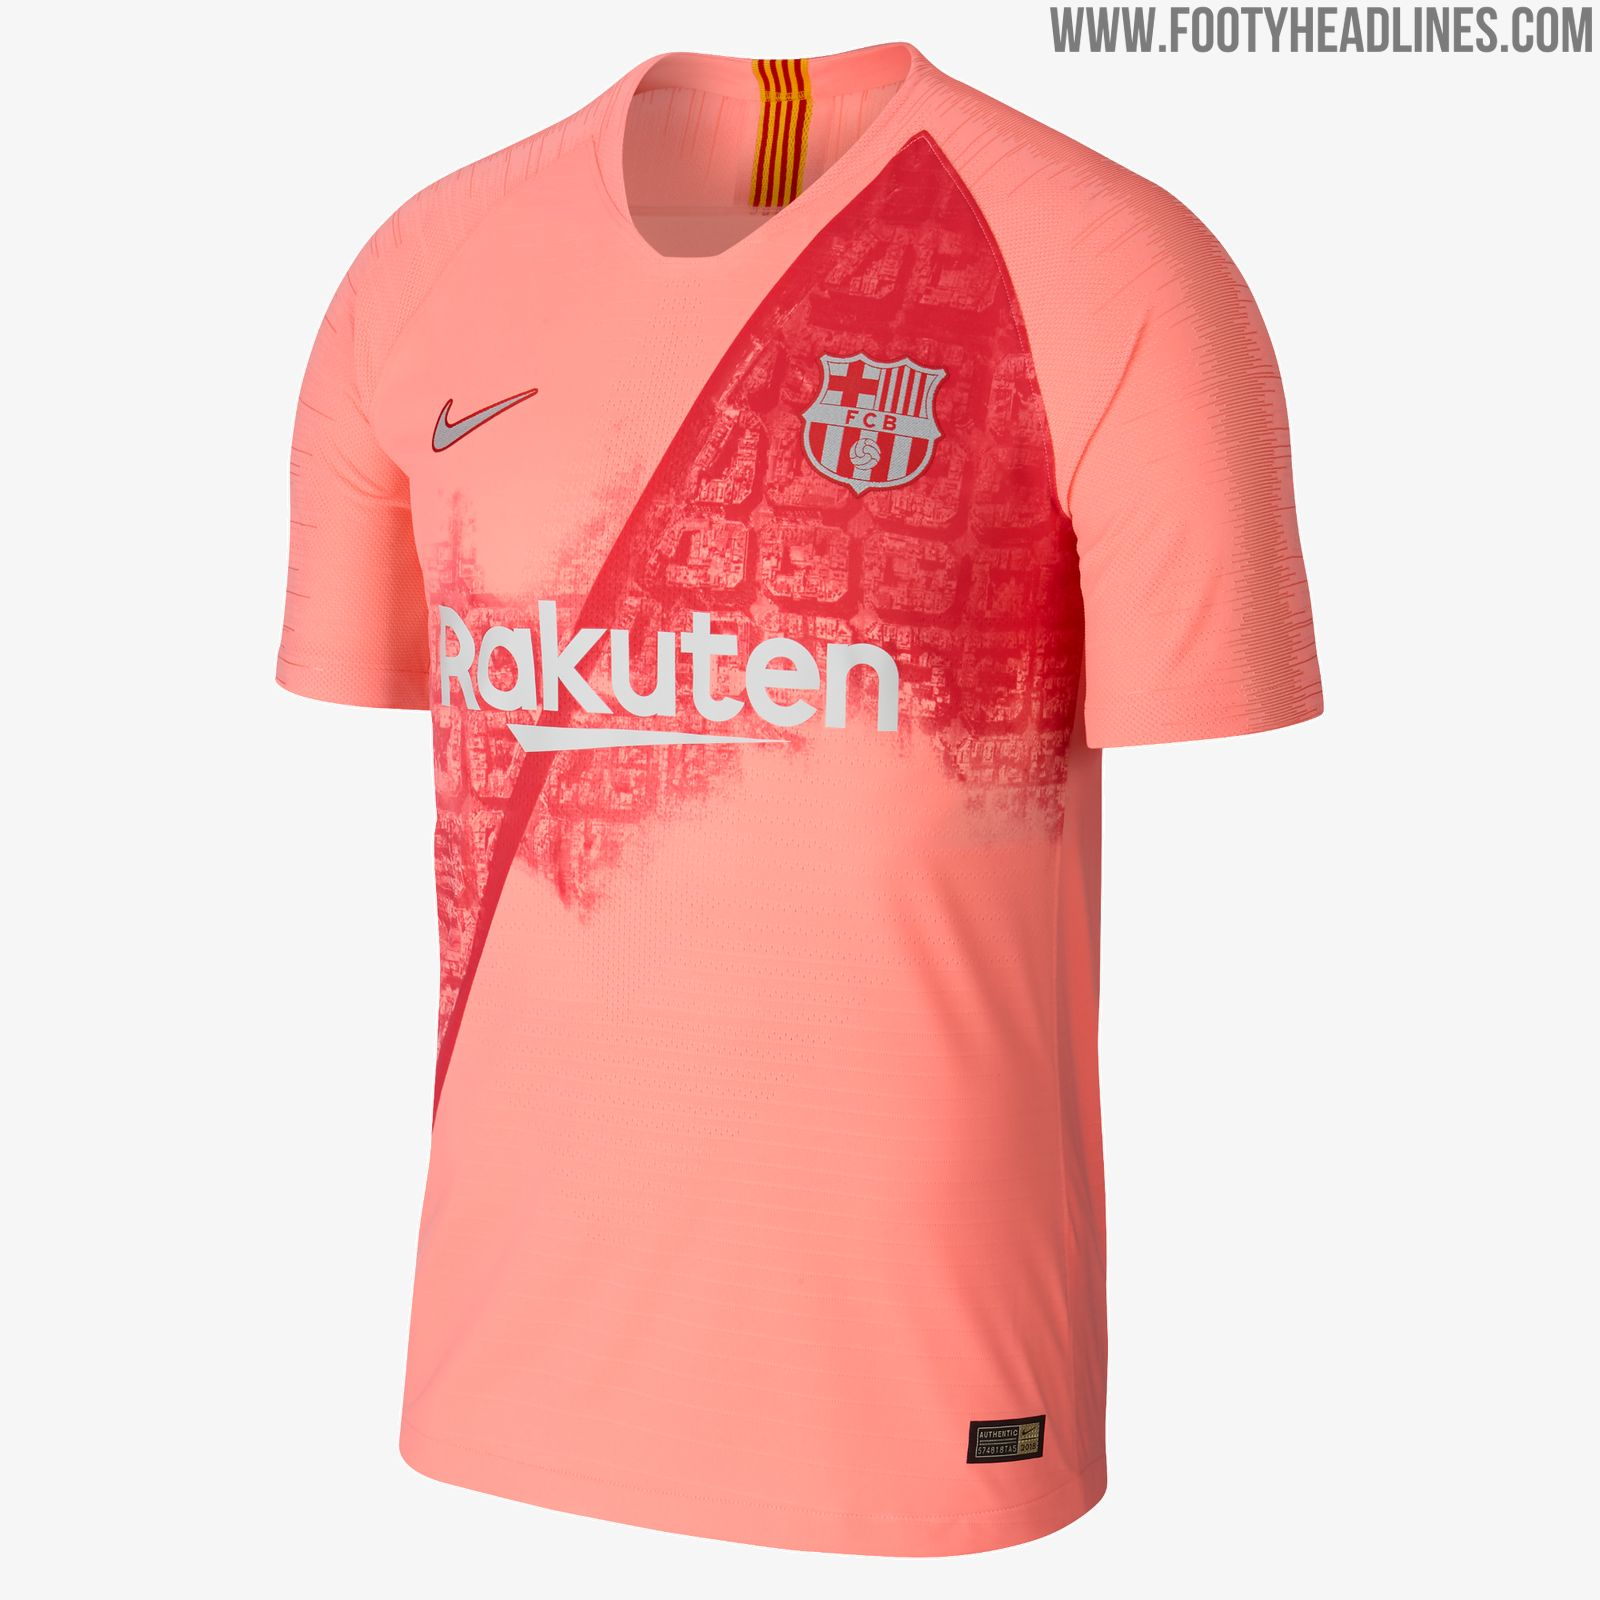 Nike 18-19 Third Kits Released - Barcelona d278a5122